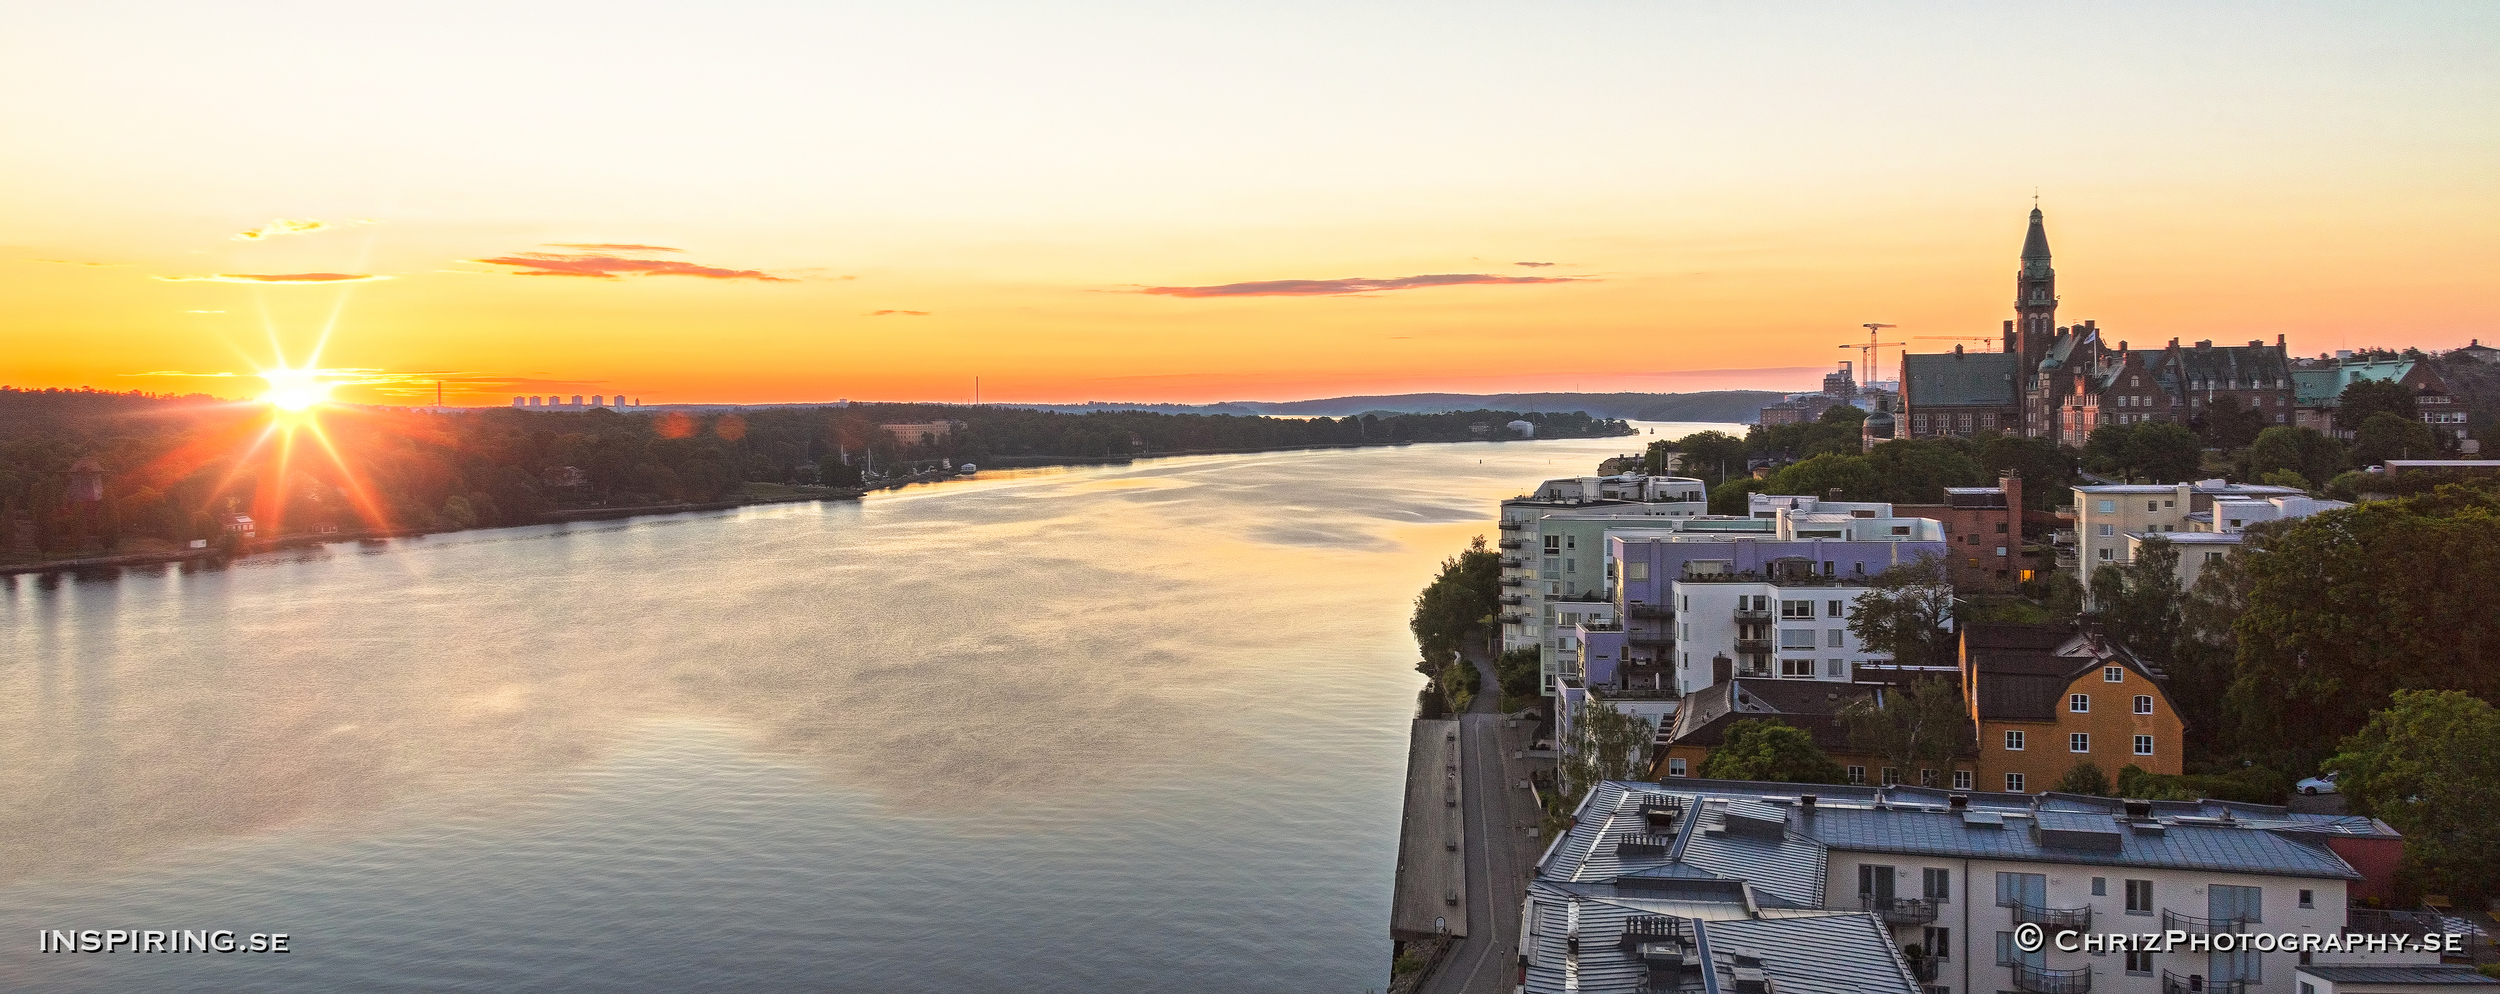 Elite_Hotel_Marina_Tower_Inspiring.se_copyright_ChrizPhotography.se_19.jpg